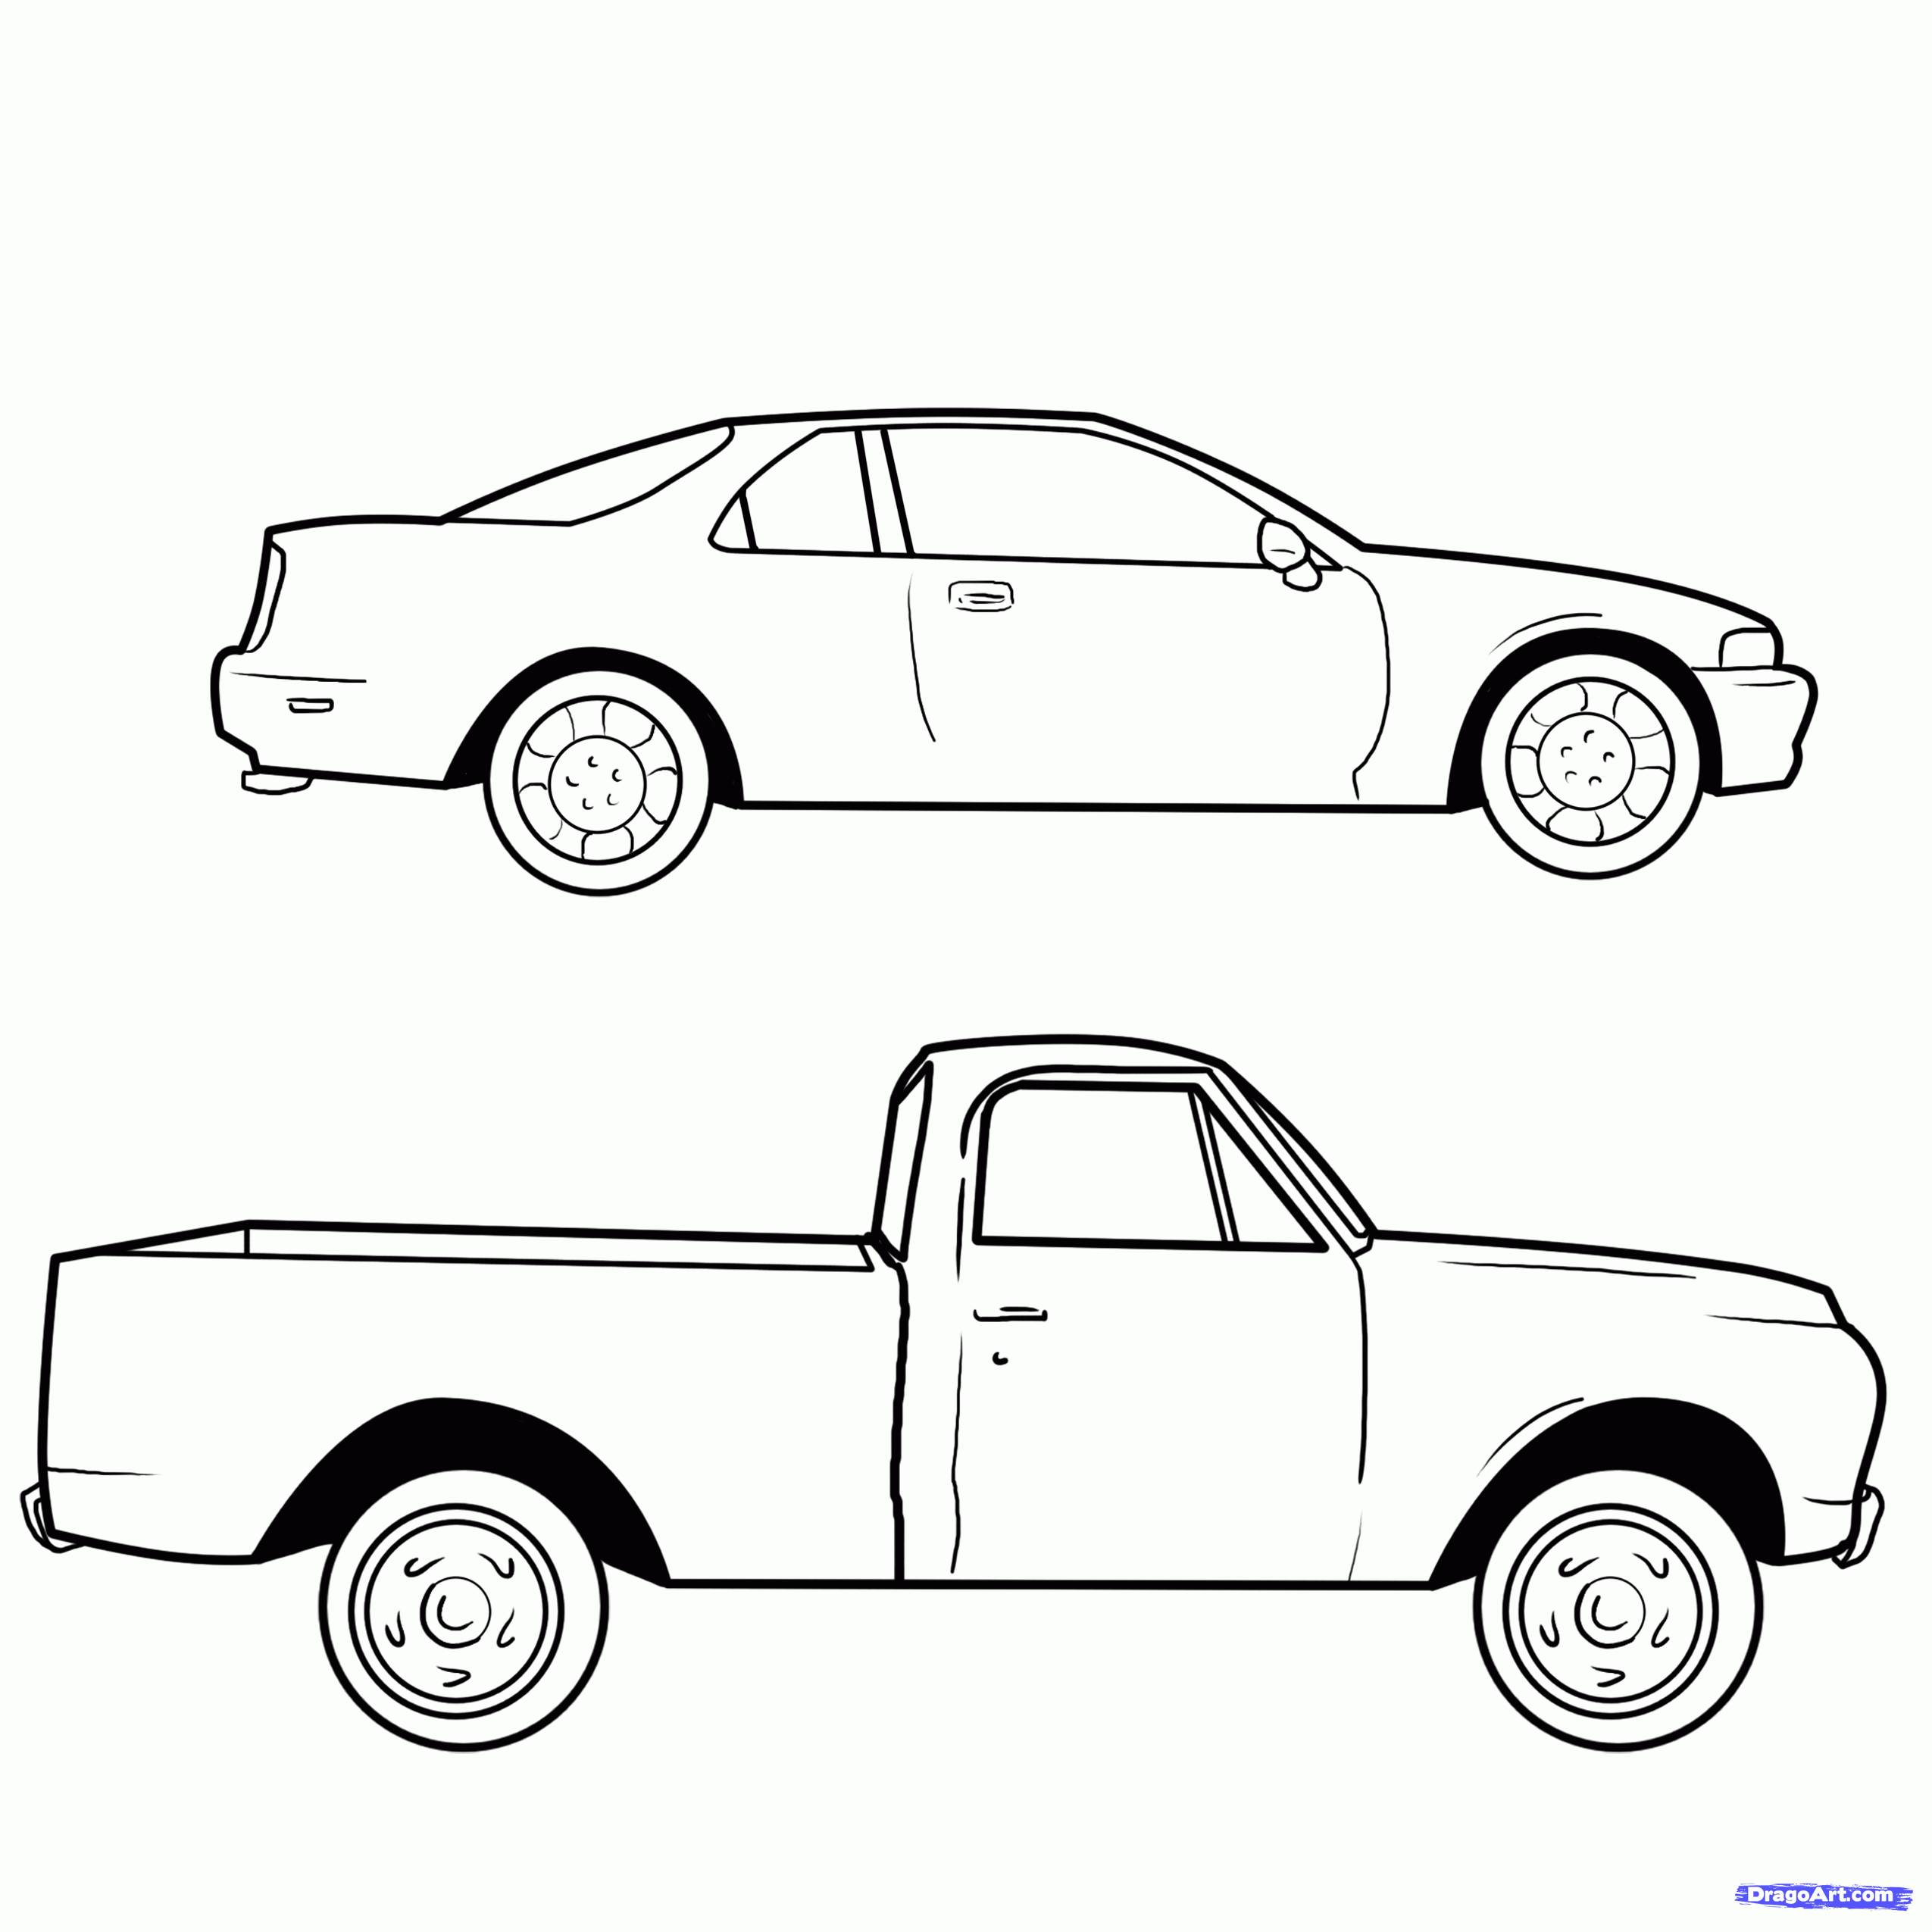 2550x2550 Drawing Cars